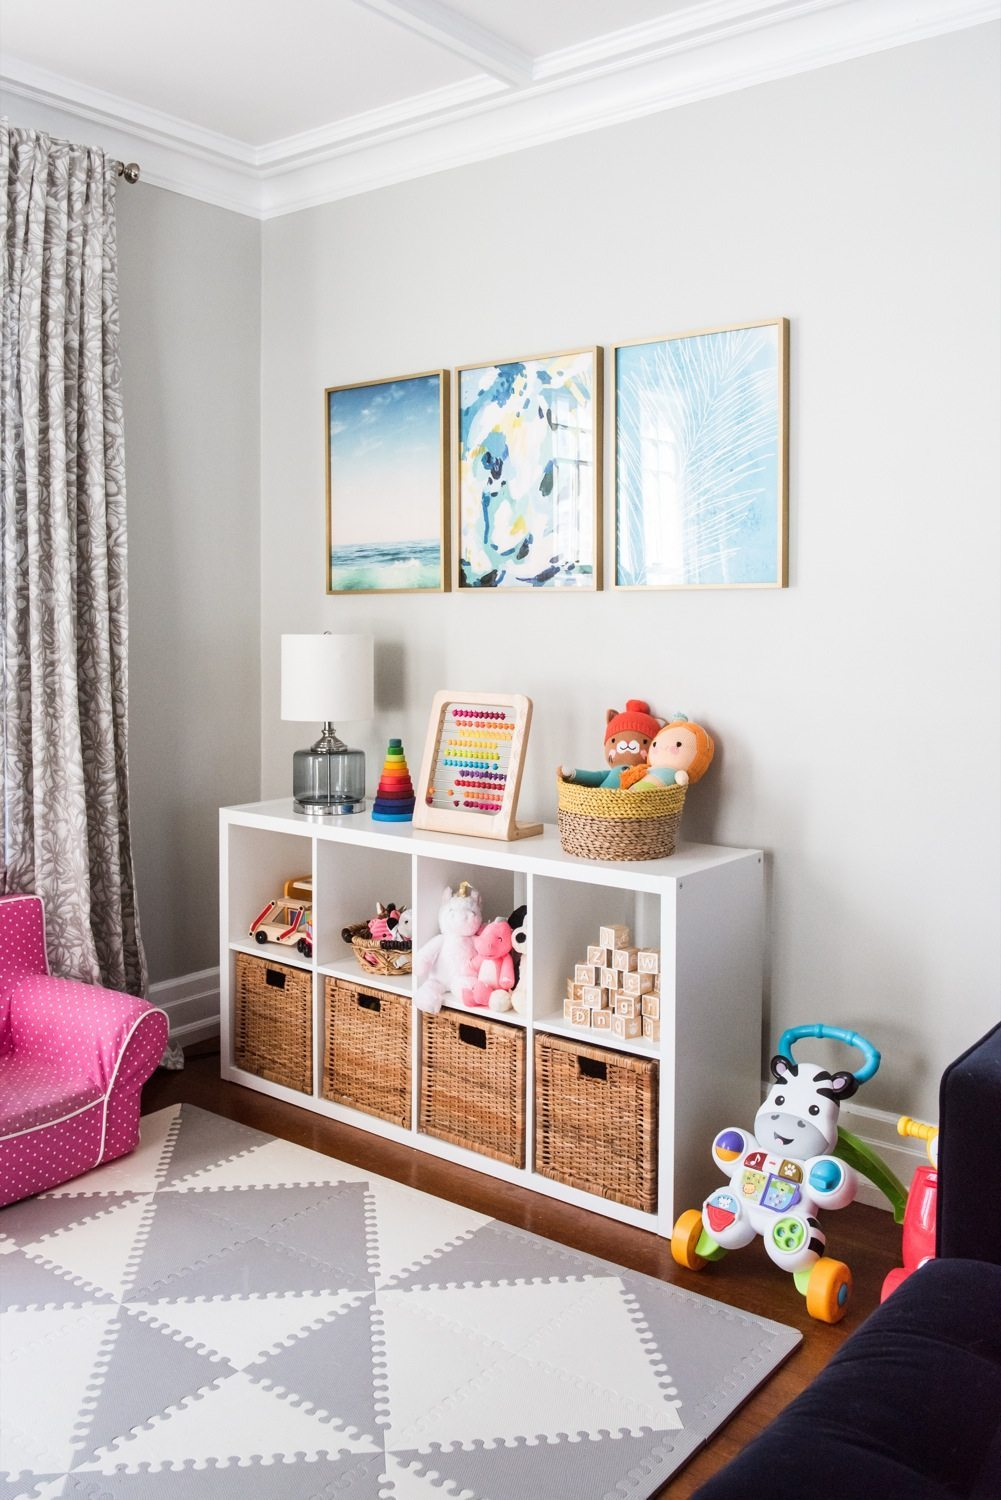 rope chair target bungee cord emerson's modern playroom tour - the sweetest occasion